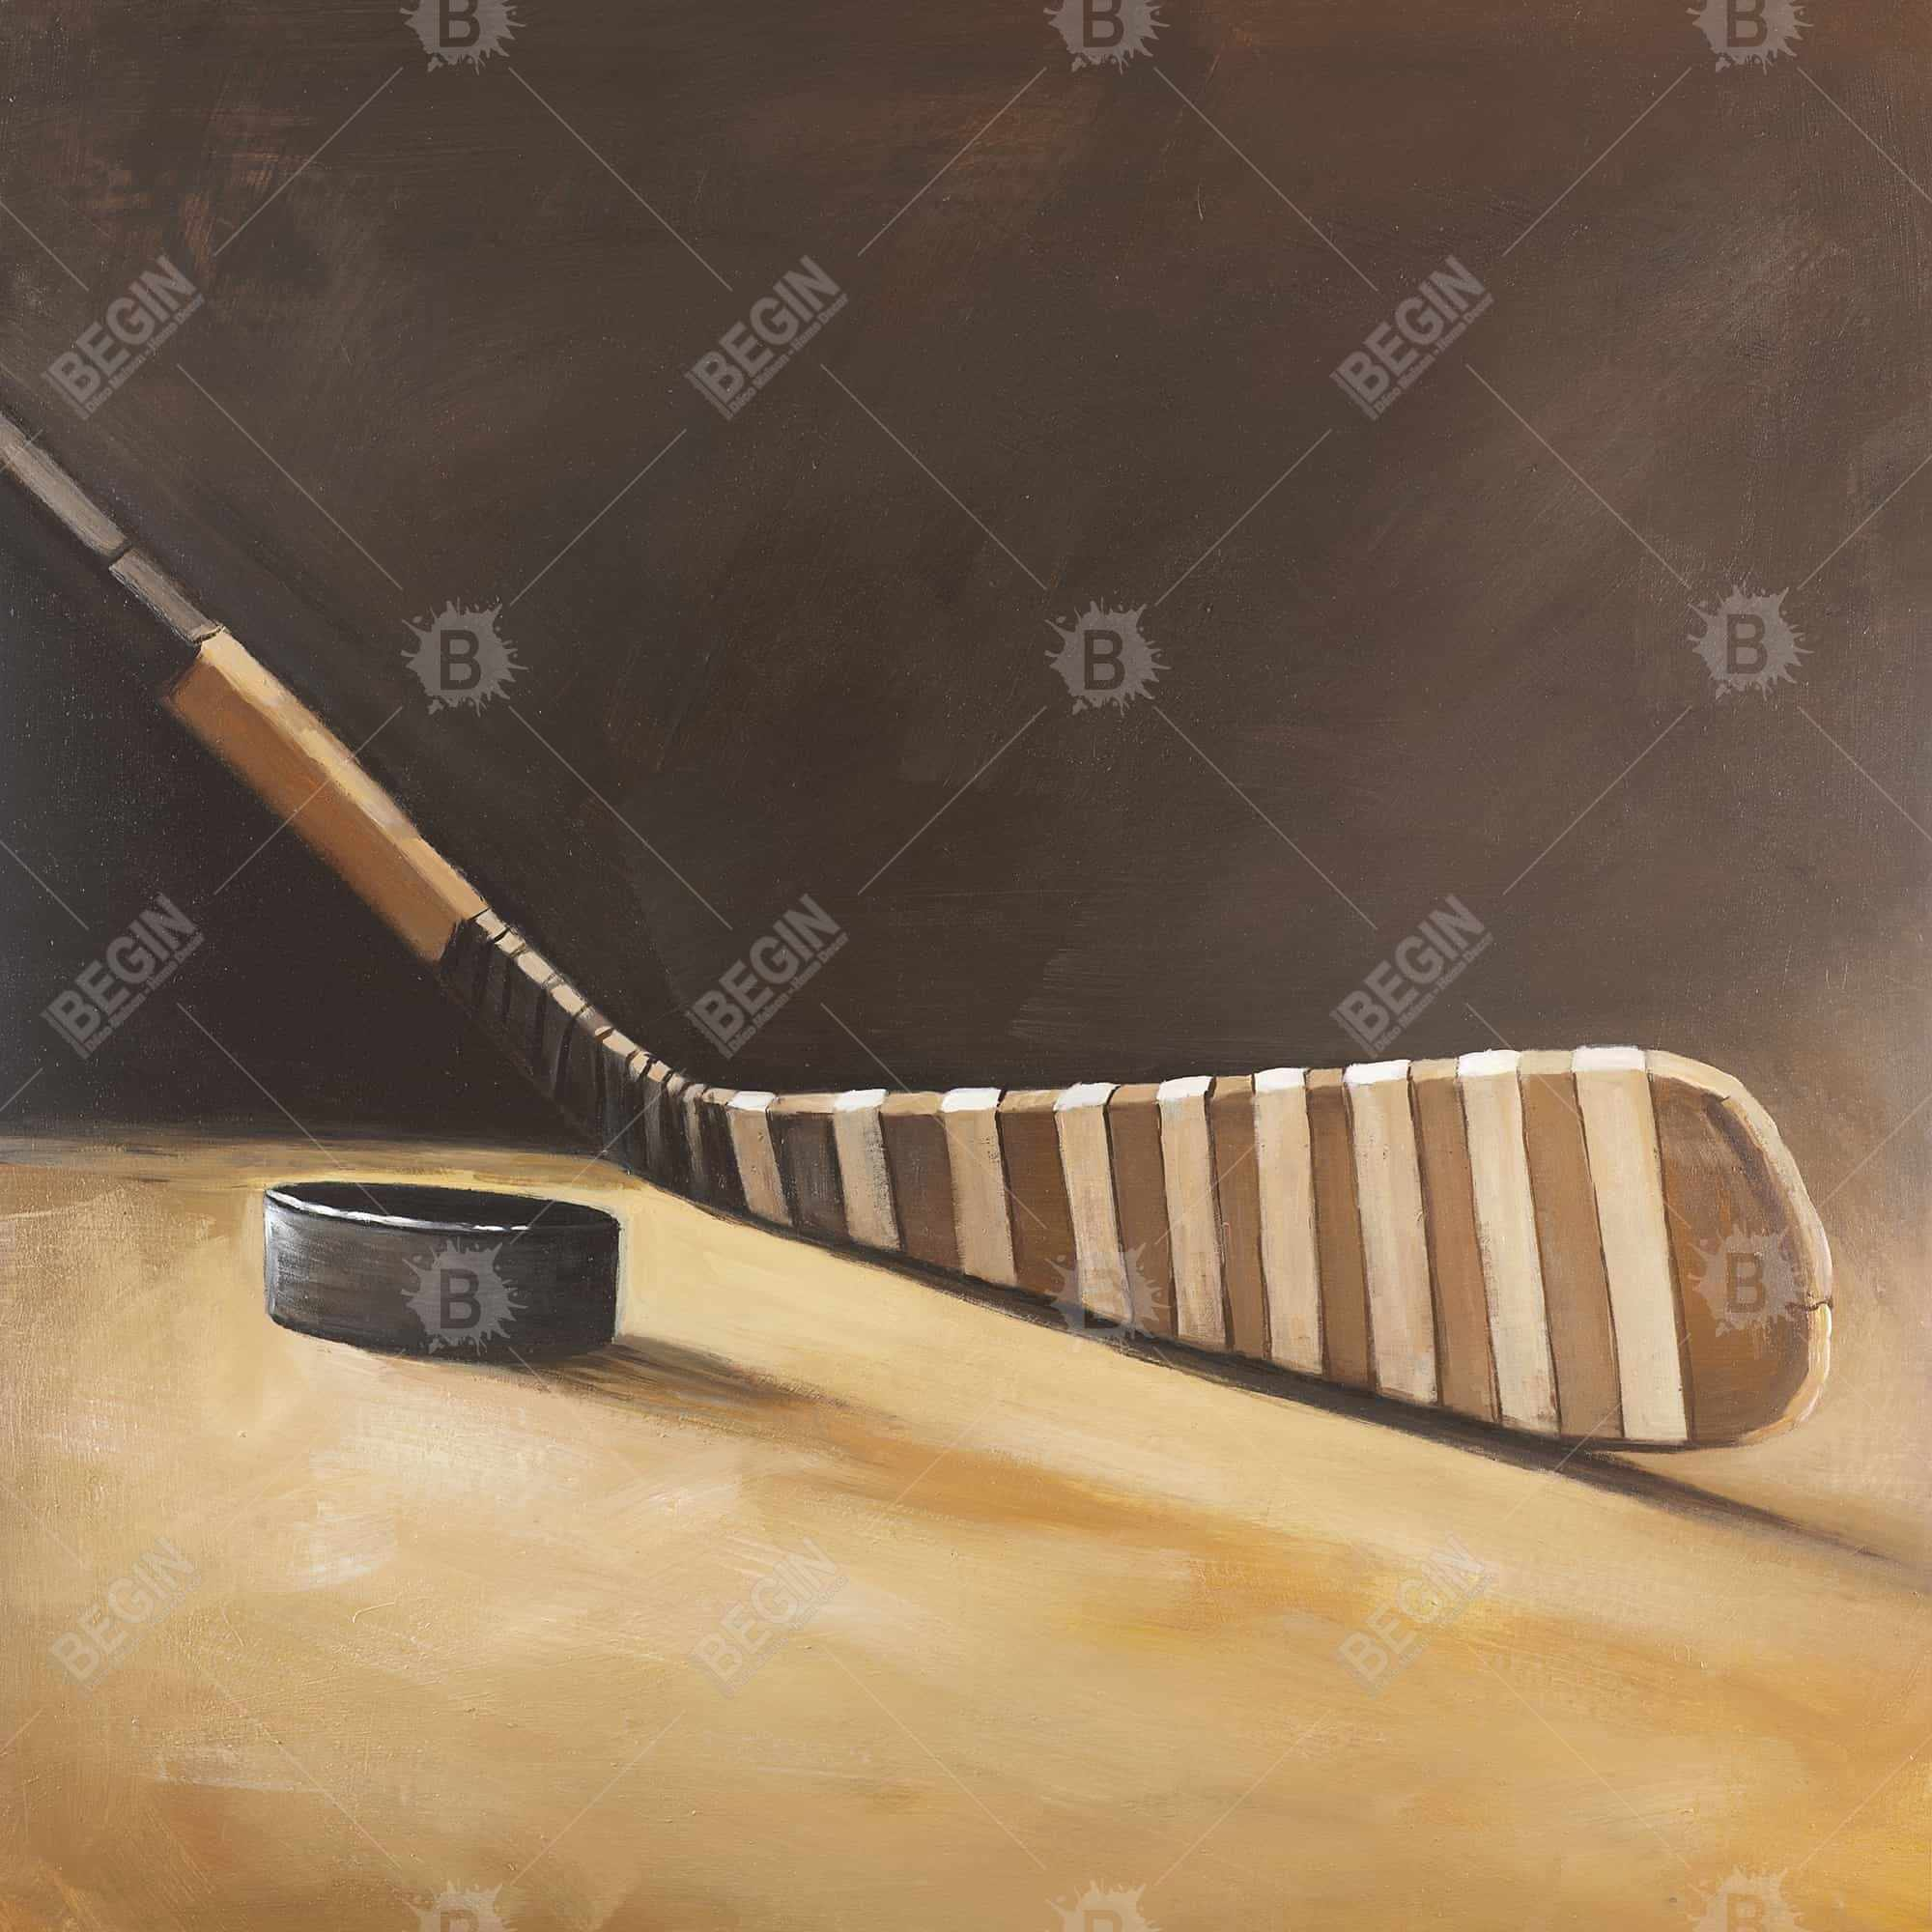 Stick and hockey puck